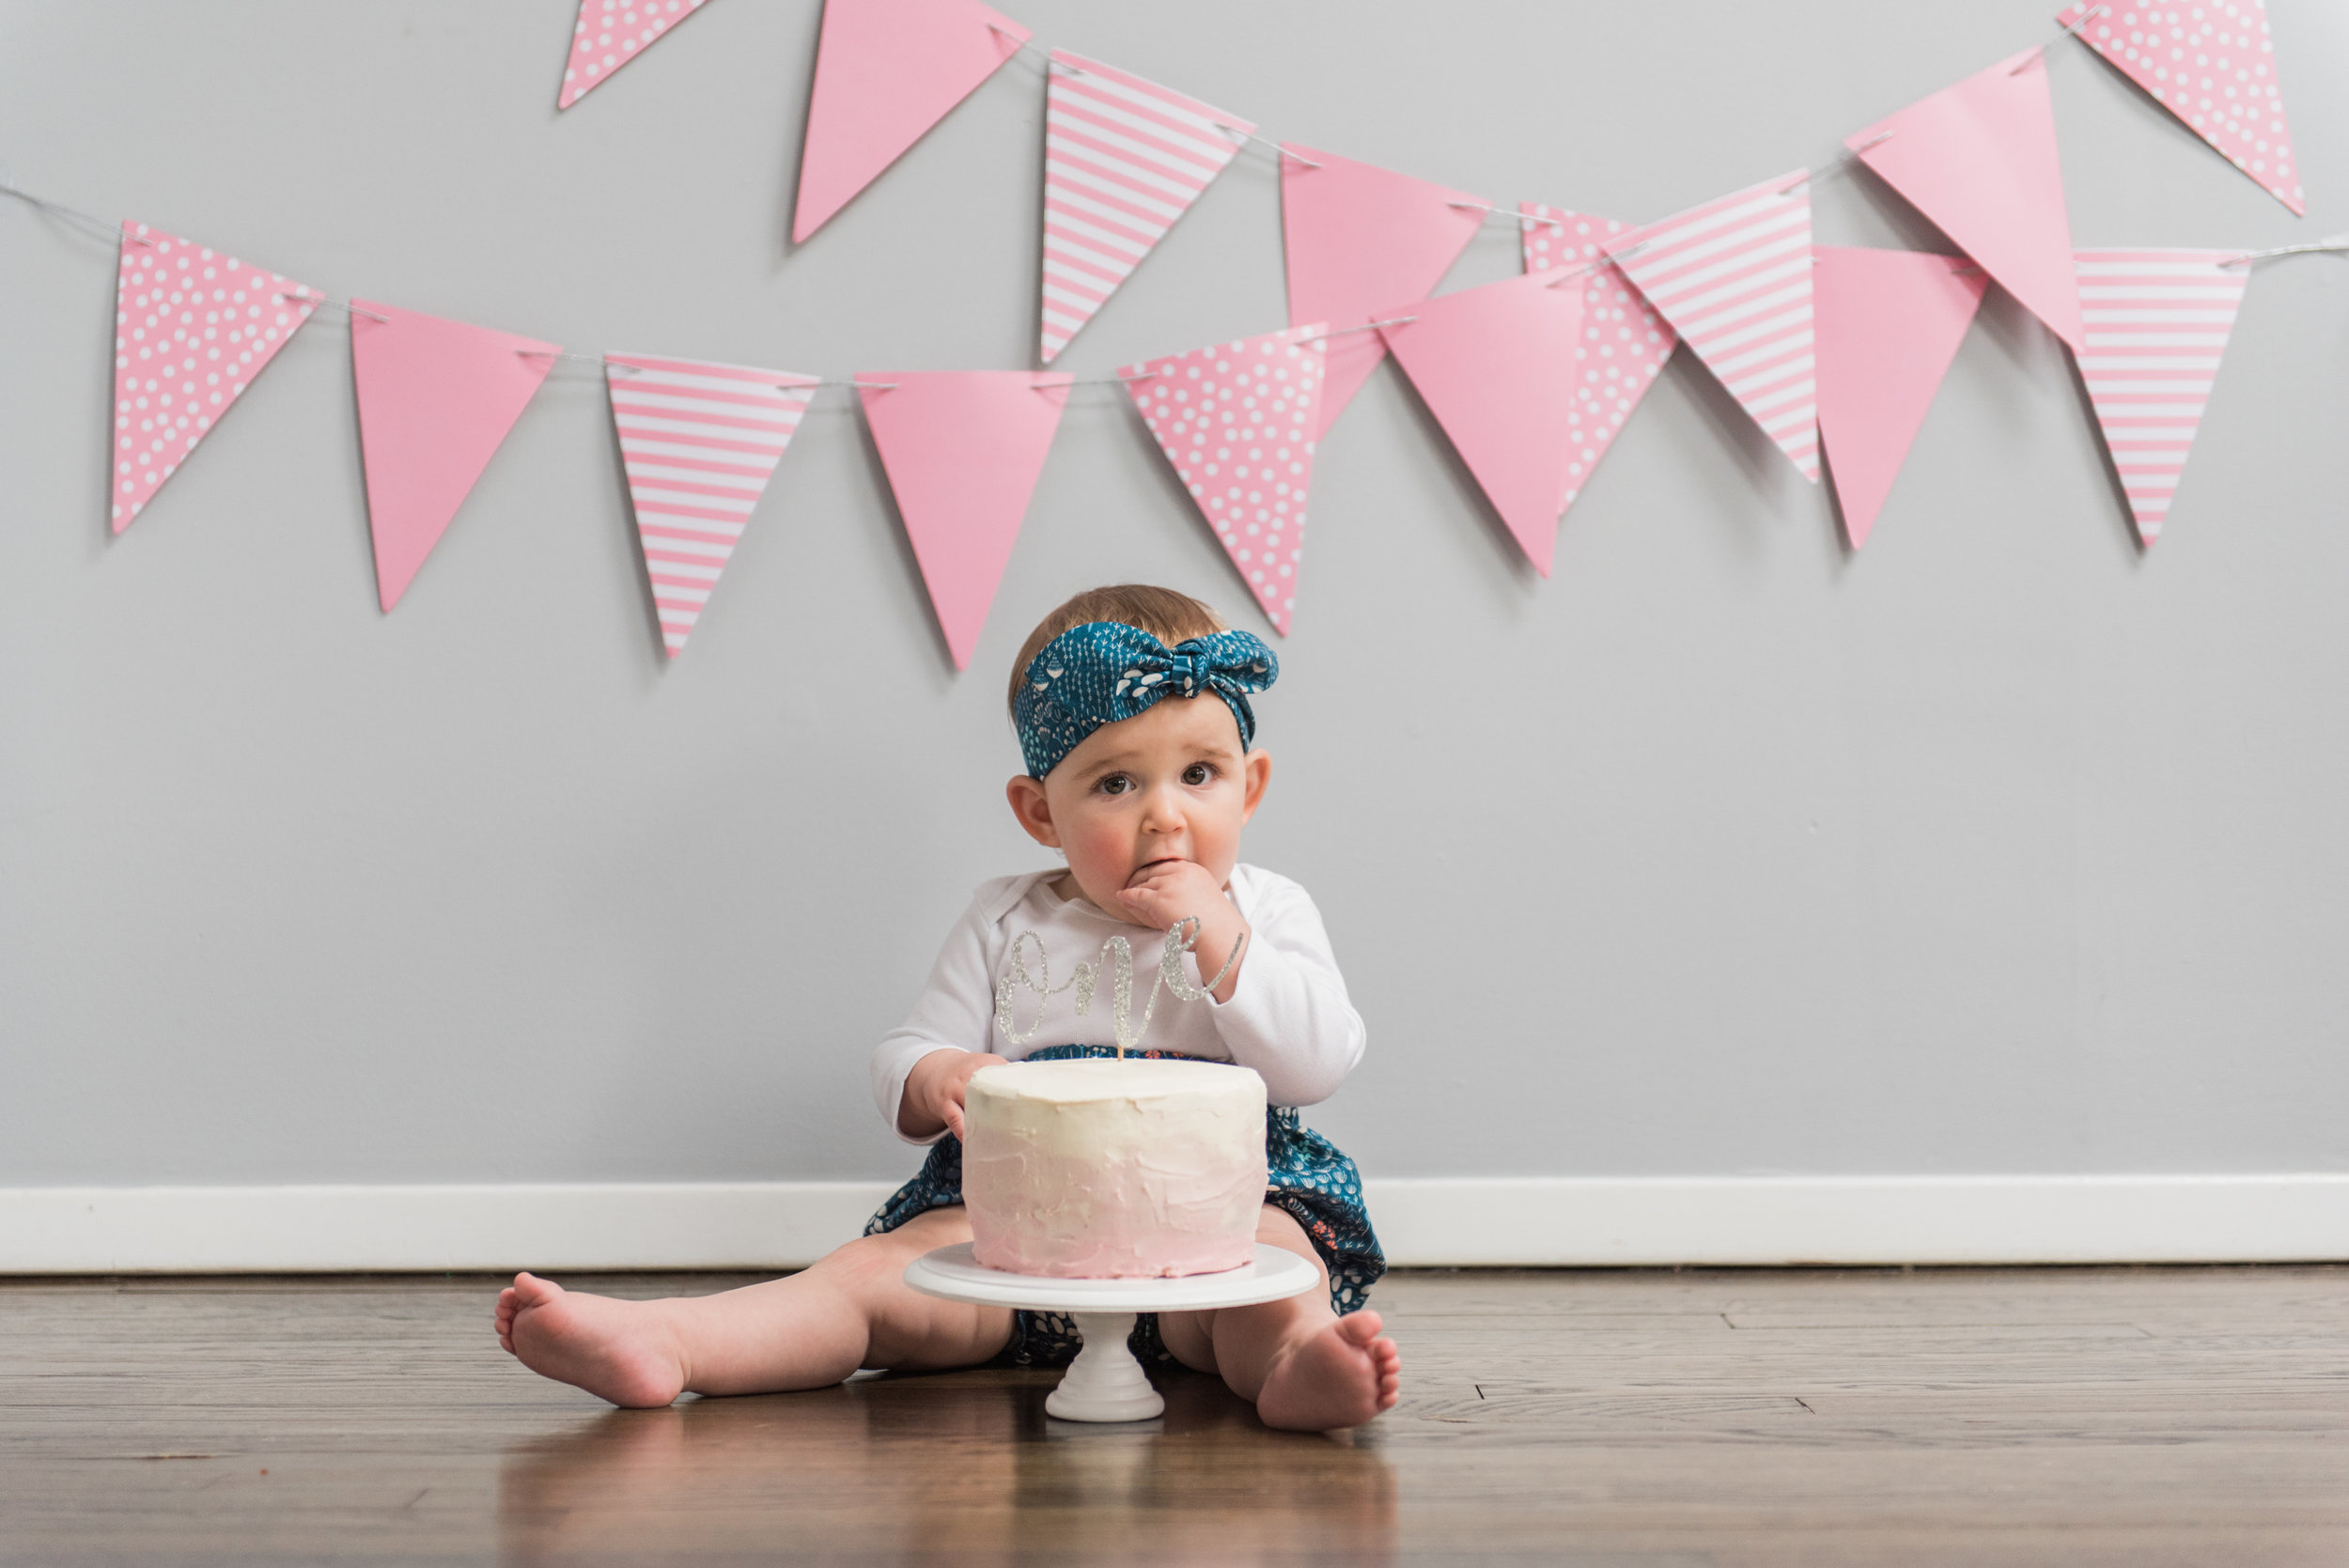 The latest trend in celebrating a baby's 1st birthday is the cake smash. To do it you set up a spot on the floor with a small birthday cake, a baby and let the smashing begin!